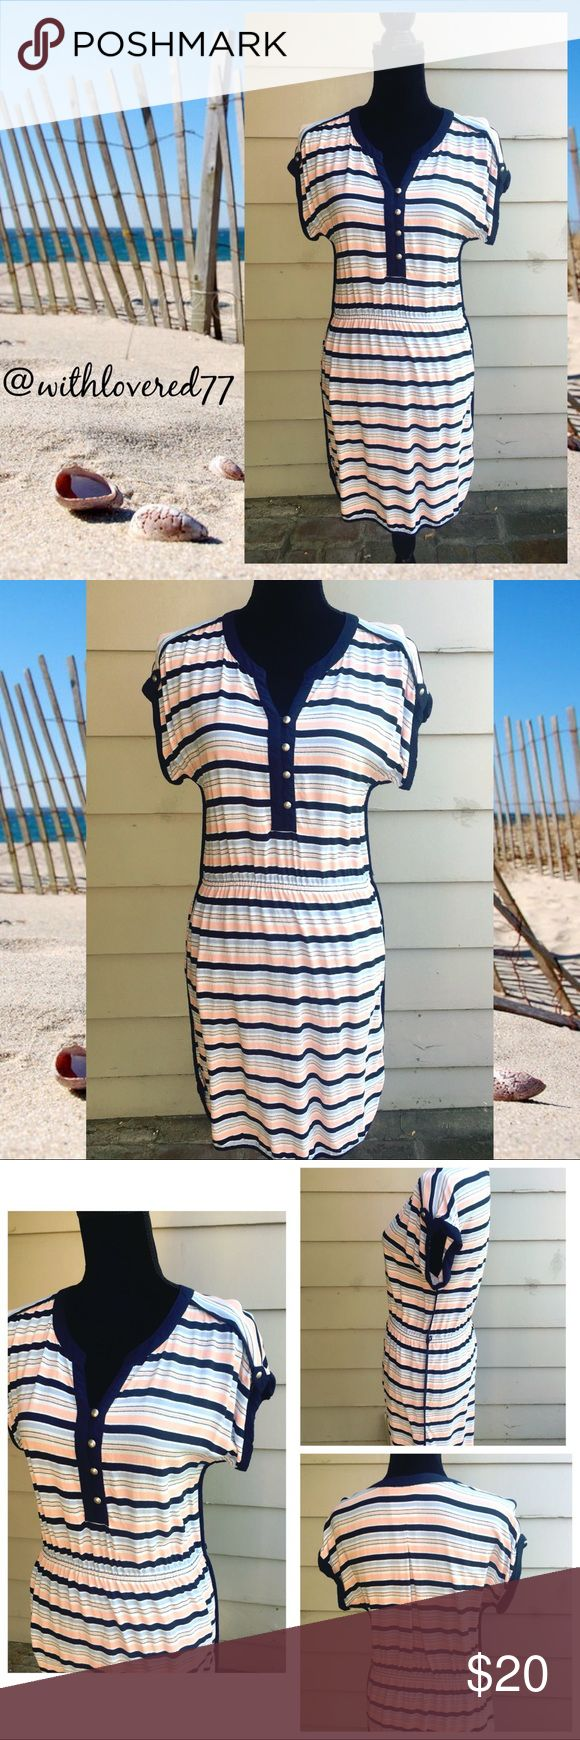 Tommy Hillfiger Striped Dress 👗 SZ S/P Tommy Hillfiger Striped Dress 👗 SZ S/P 👗 Material Rayon 👗 Colors Of Navy Blue, Light Blue, White and Peach 👗 Missing Belt String 👗 Perfect For That Vacay To A Coastal Town, For A Walk On The Beach, For A Sunday Tea Party, For A Day On The Boat 🚣♀️ Super Cute! Tommy Hilfiger Dresses